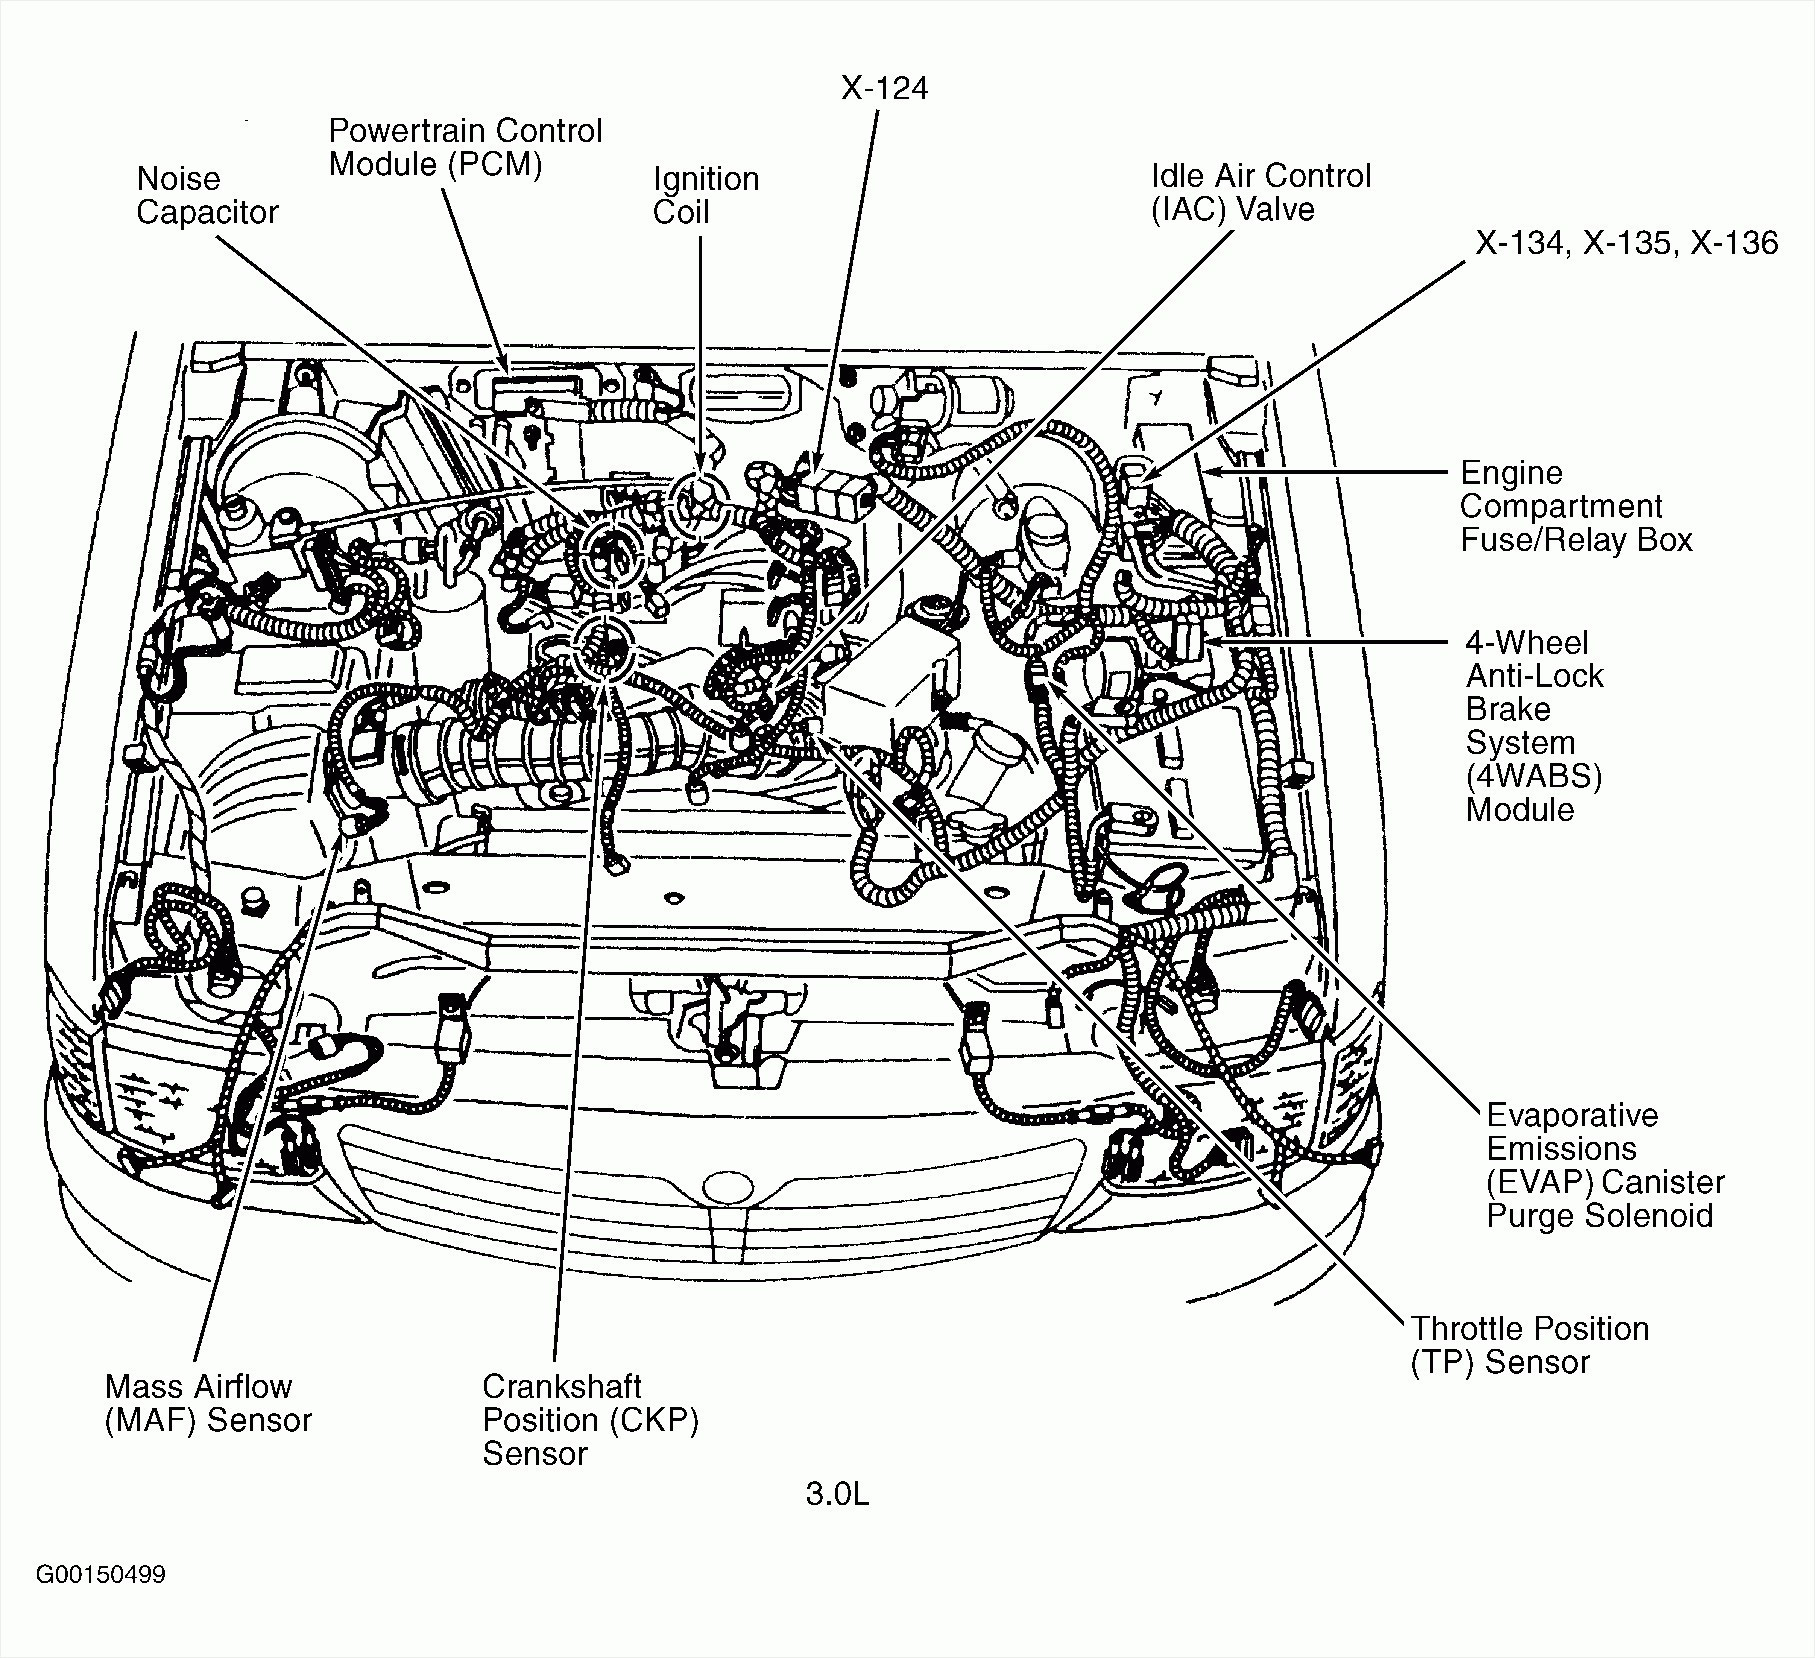 Chevy Cavalier Engine Coolant Diagram